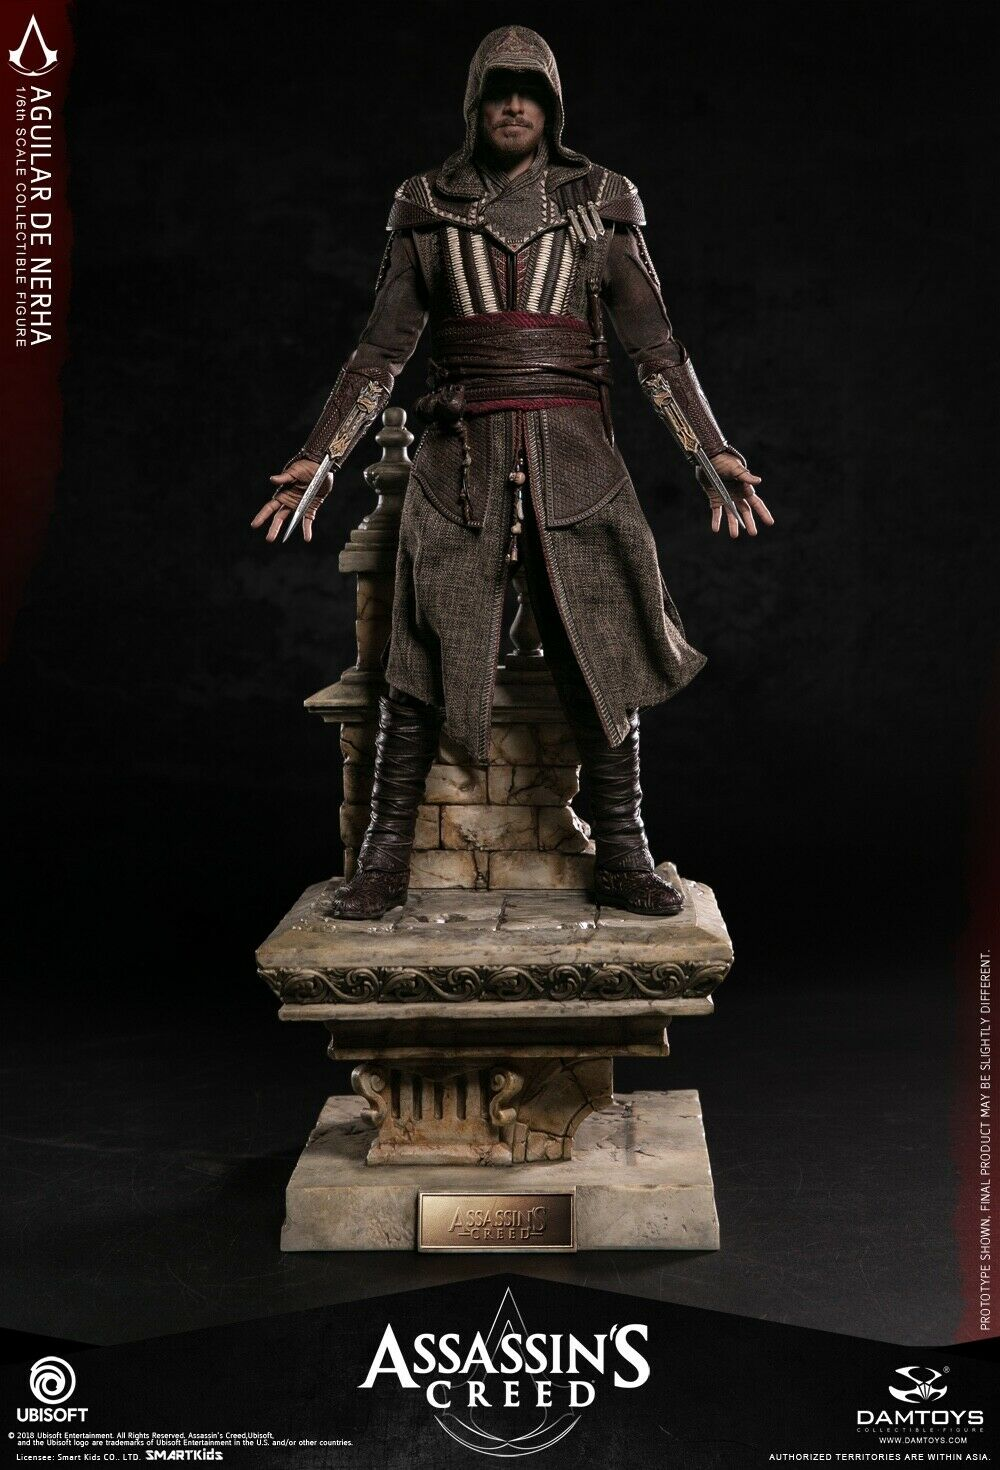 DAM TOYS DMS006 Assassin's Creed Movie Aguilar 1 6 Figure with Base IN STOCK